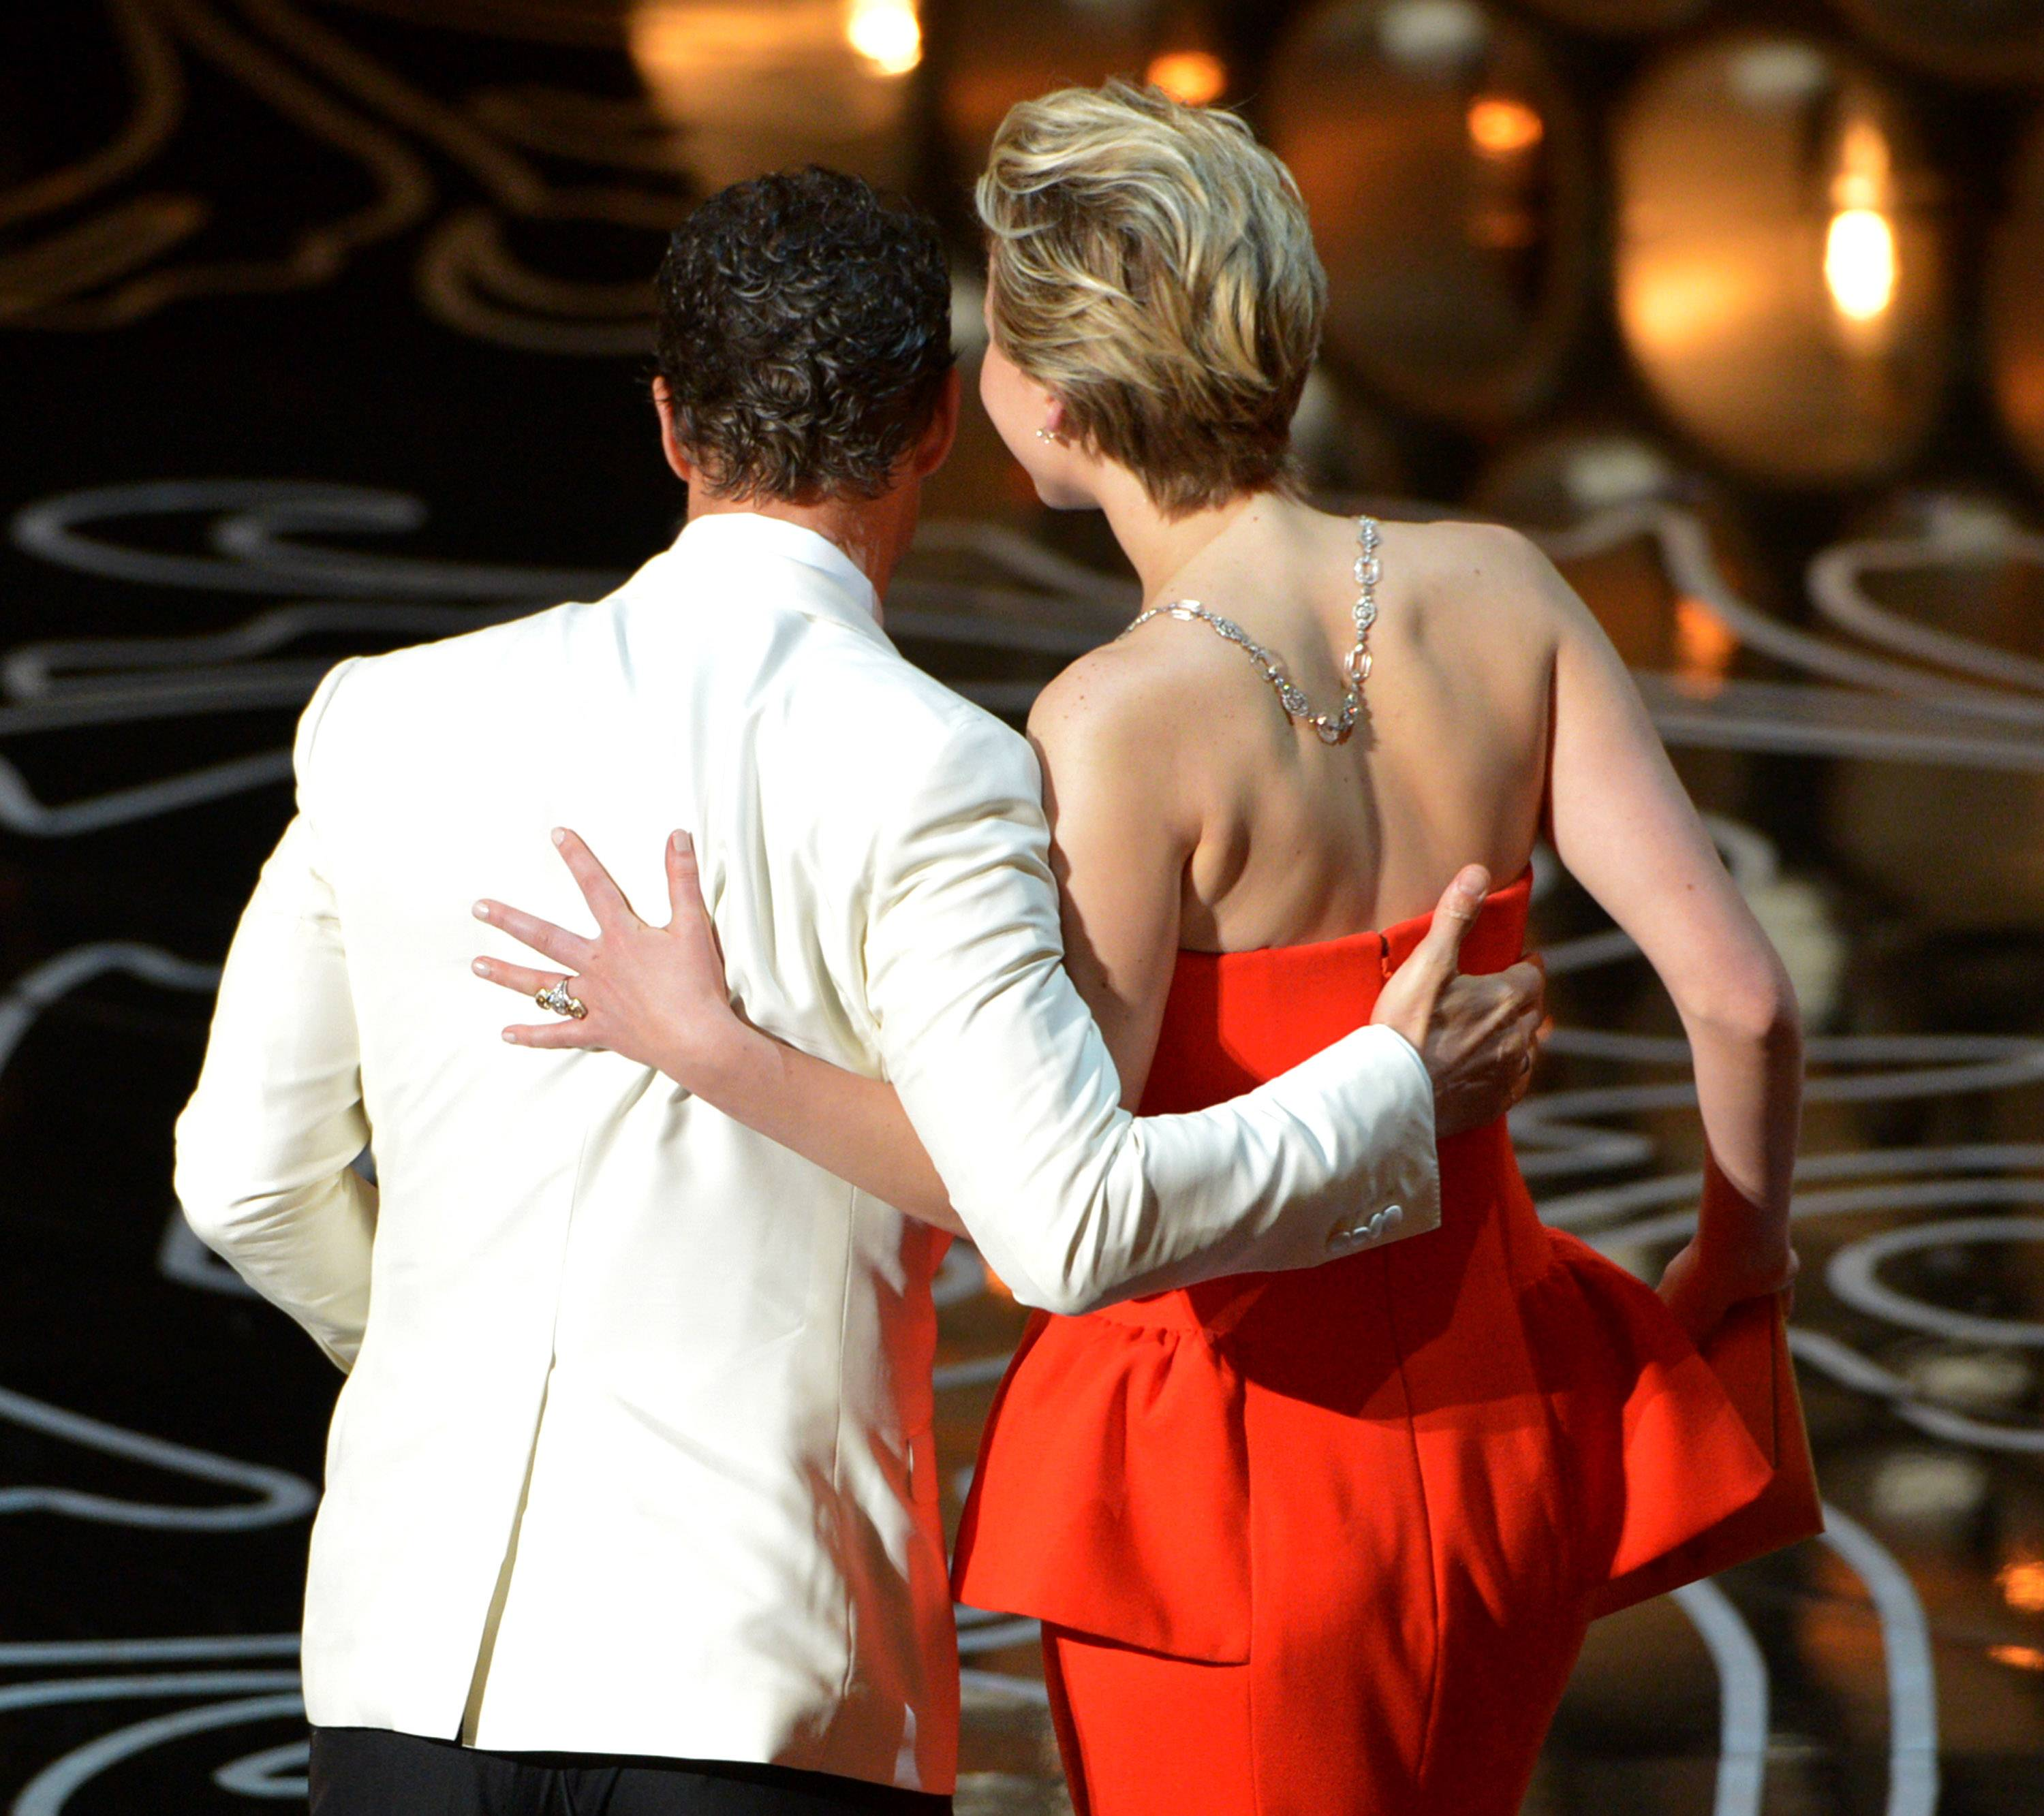 Matthew McConaughey and Jennifer Lawrence walk off stage during the Oscars.